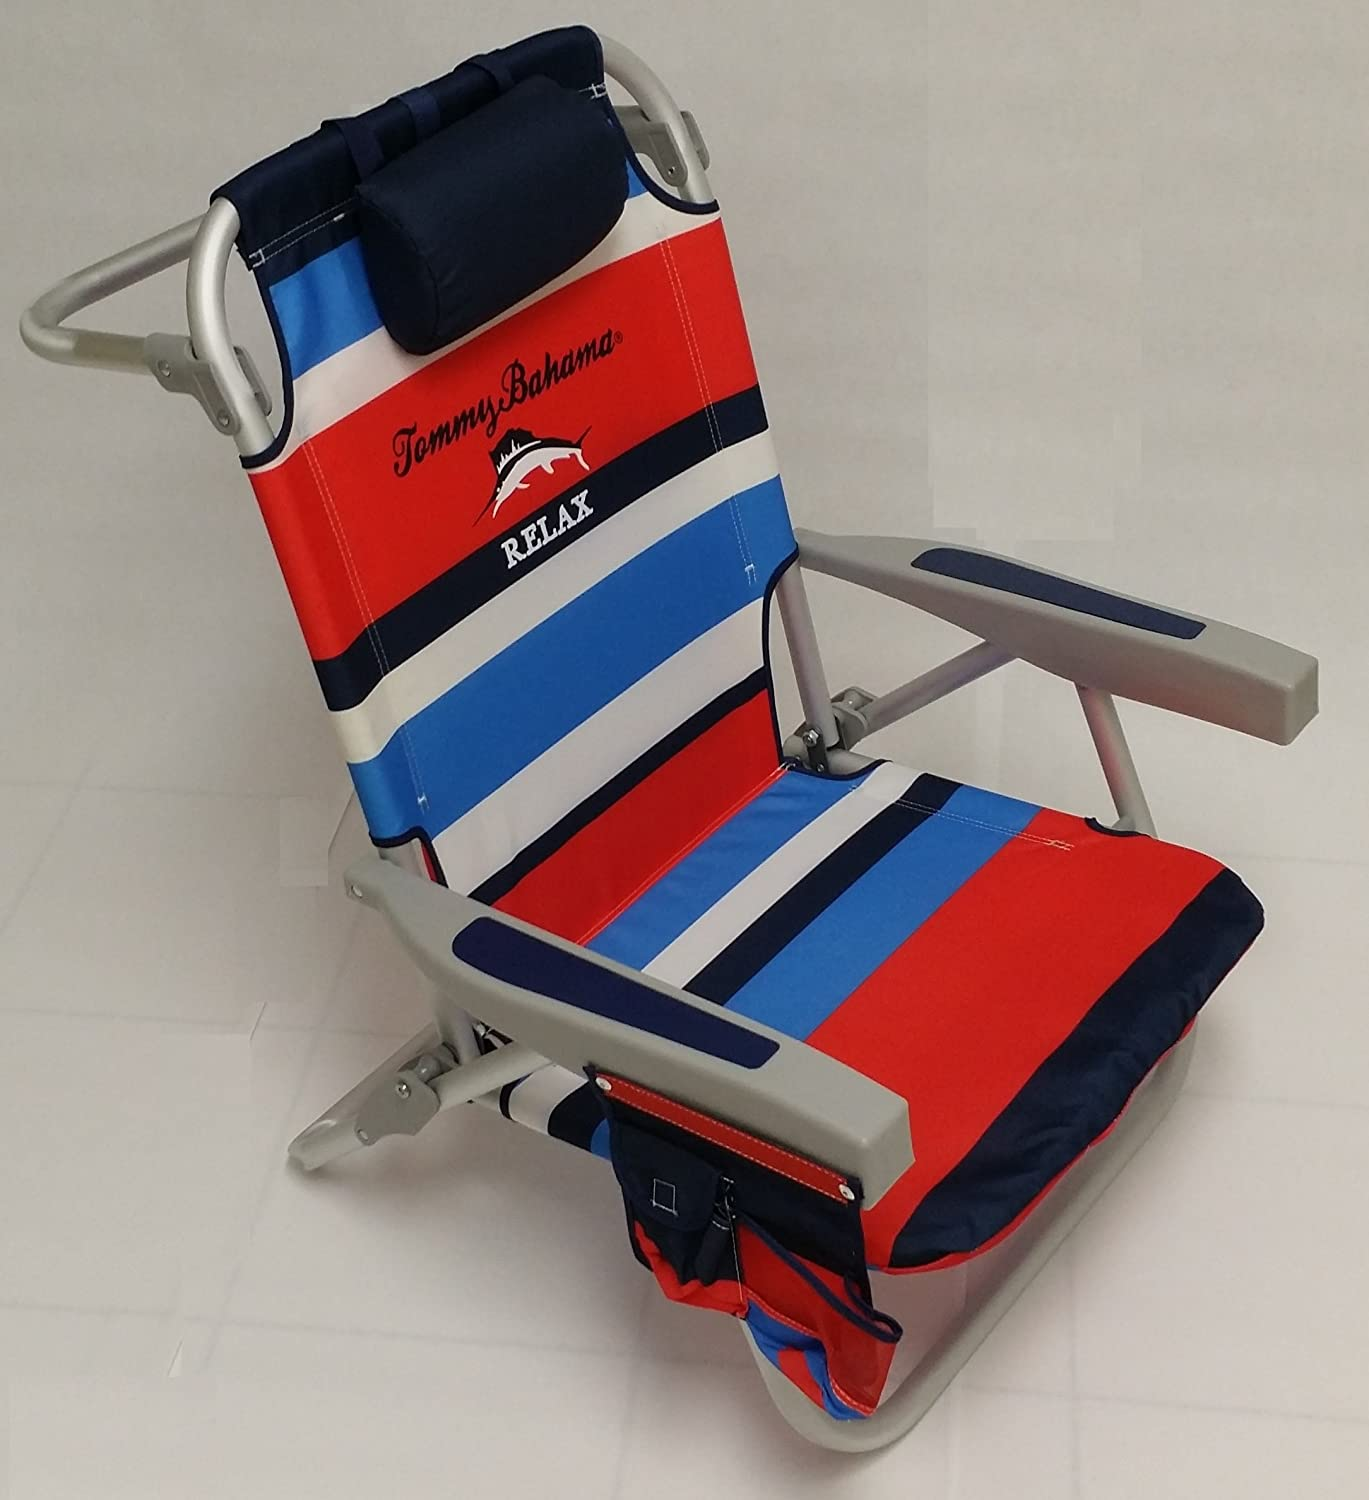 Amazon 2 Tommy Bahama 2015 Backpack Cooler Chairs with